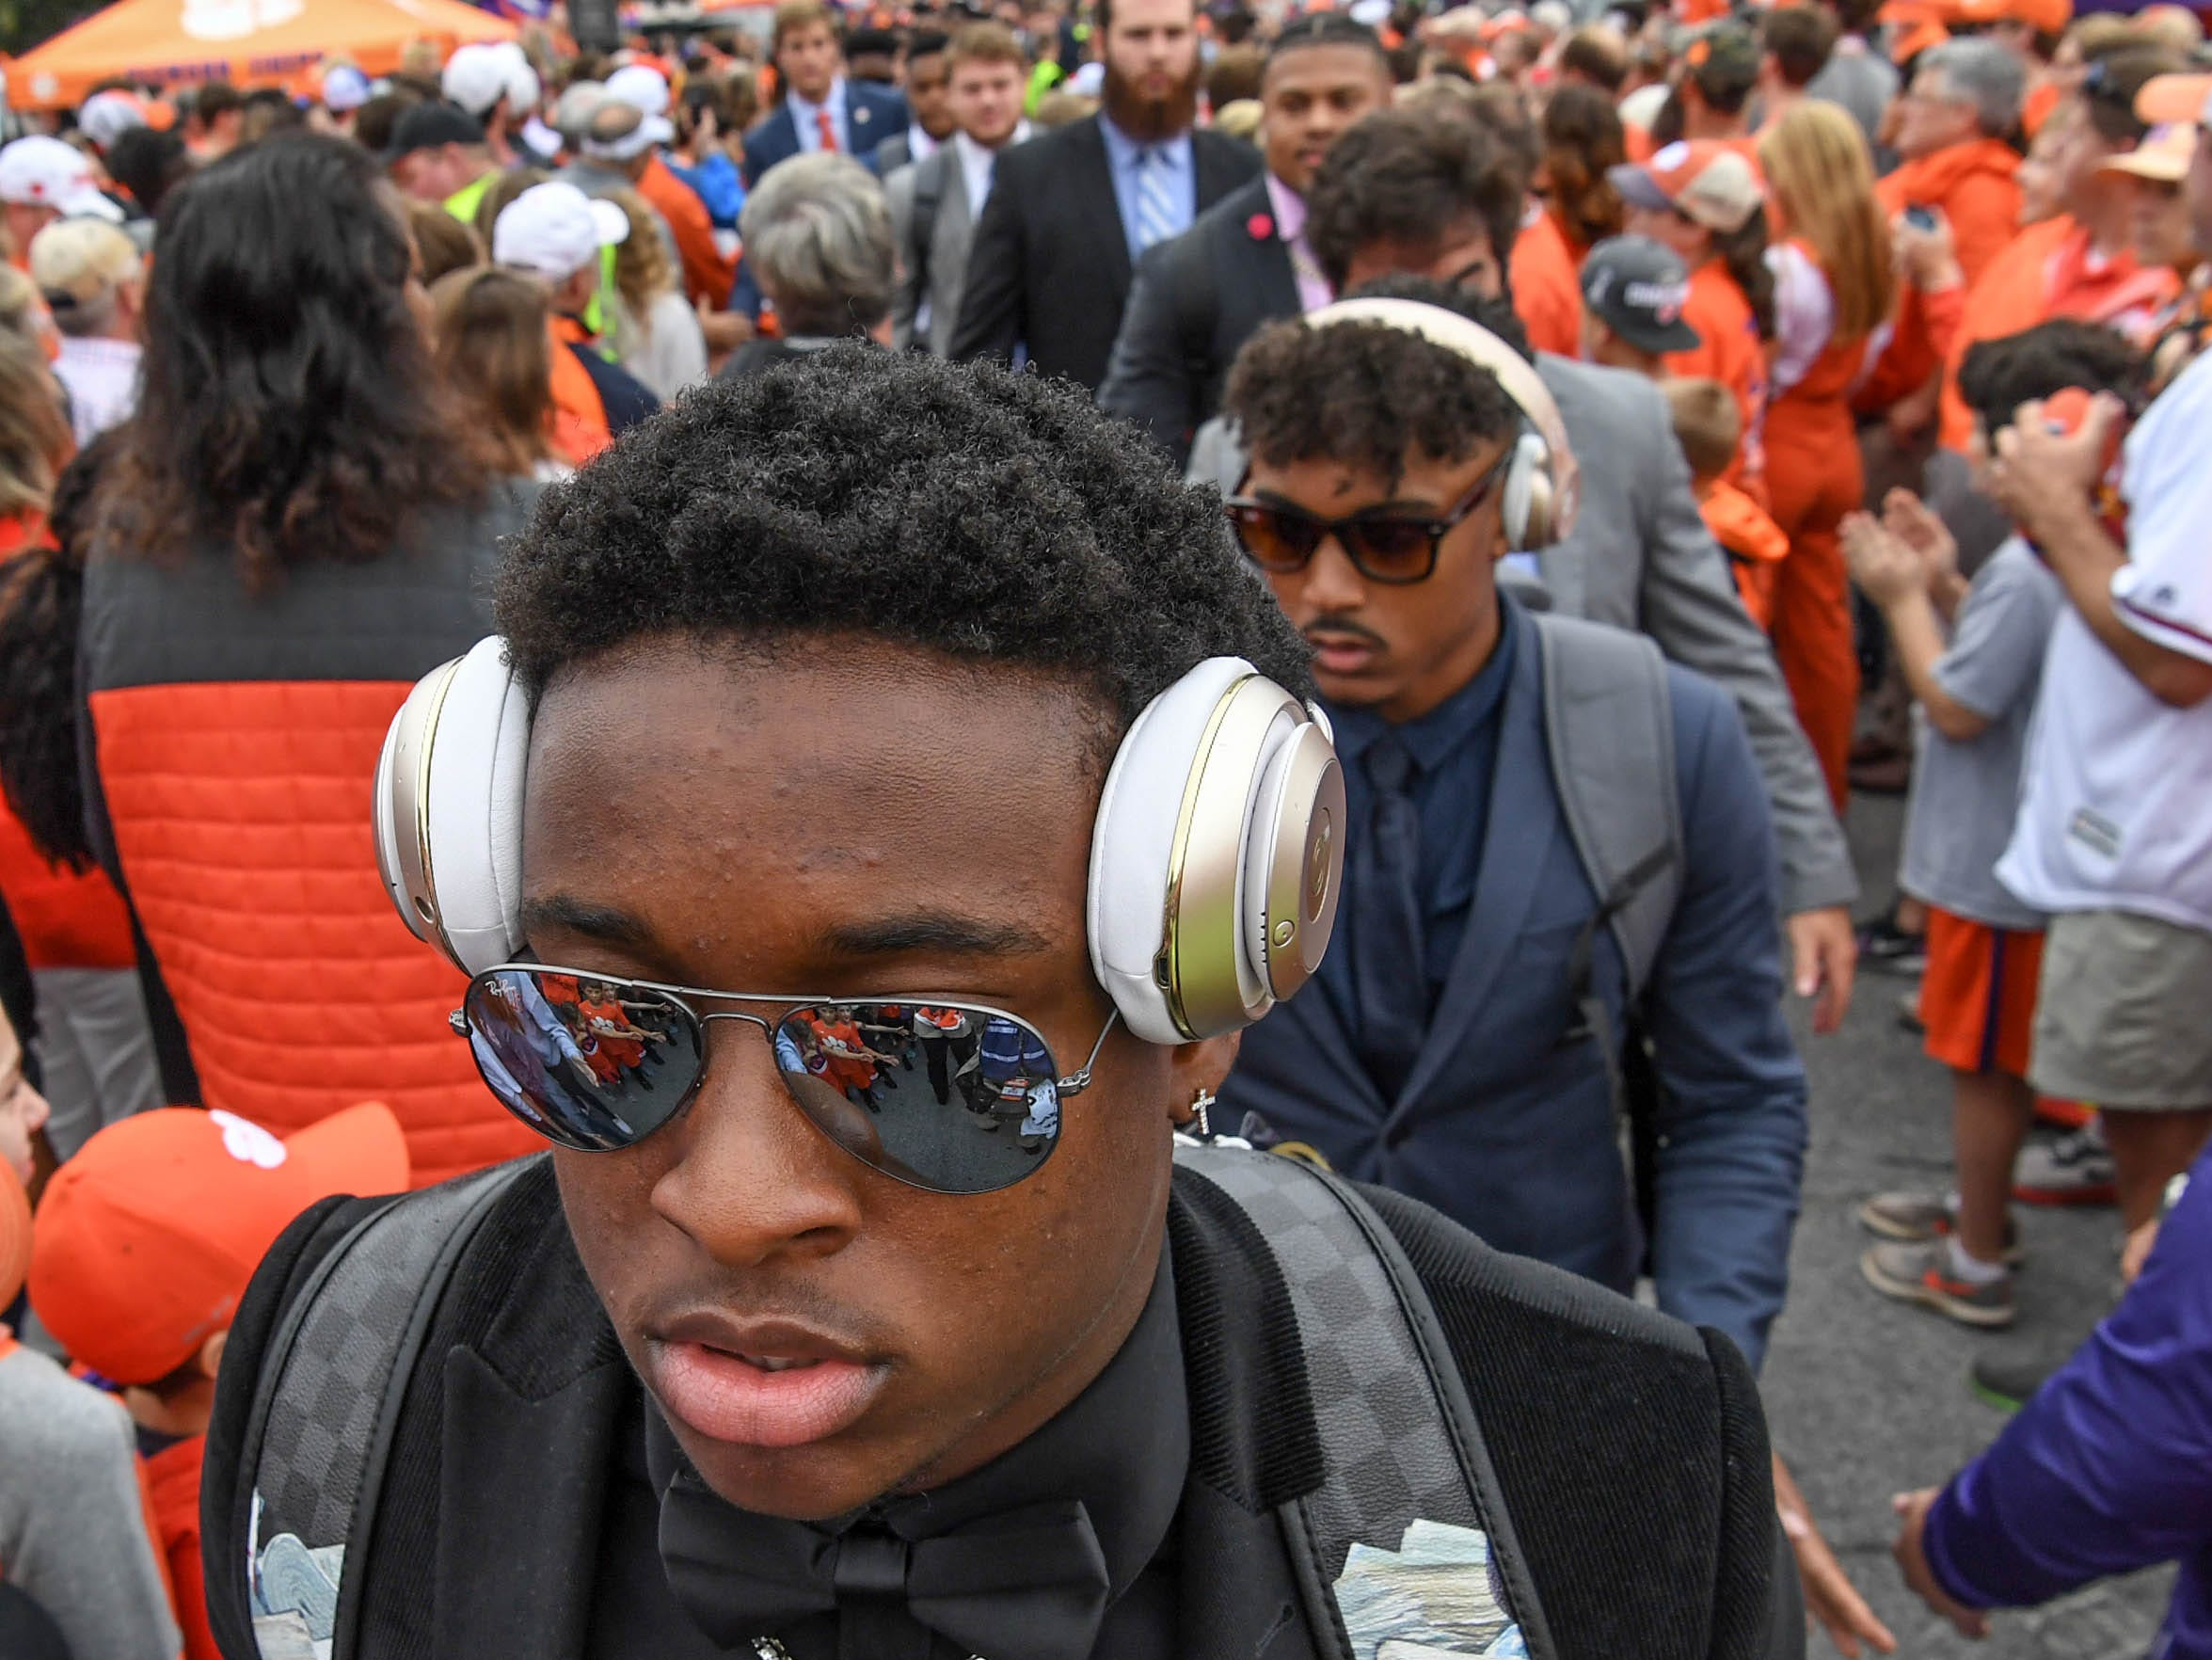 Clemson defensive back K'Von Wallace (12) walks by fans during Tiger Walk before the game in Memorial Stadium on Saturday, October 20, 2018.